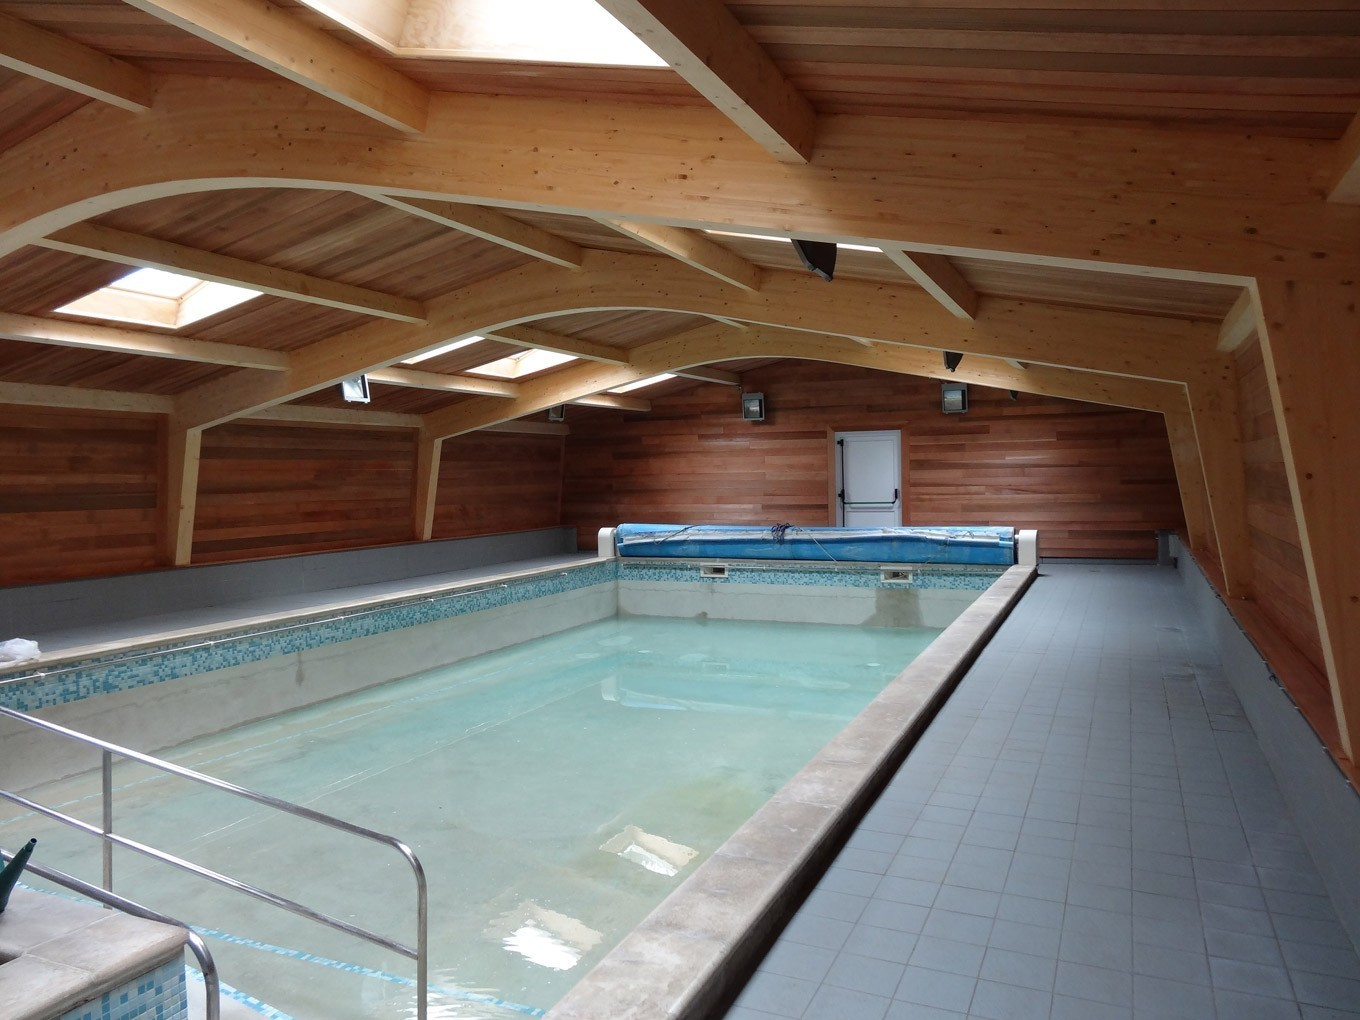 The Jubilee Pool – Hillingdon, Middlesex